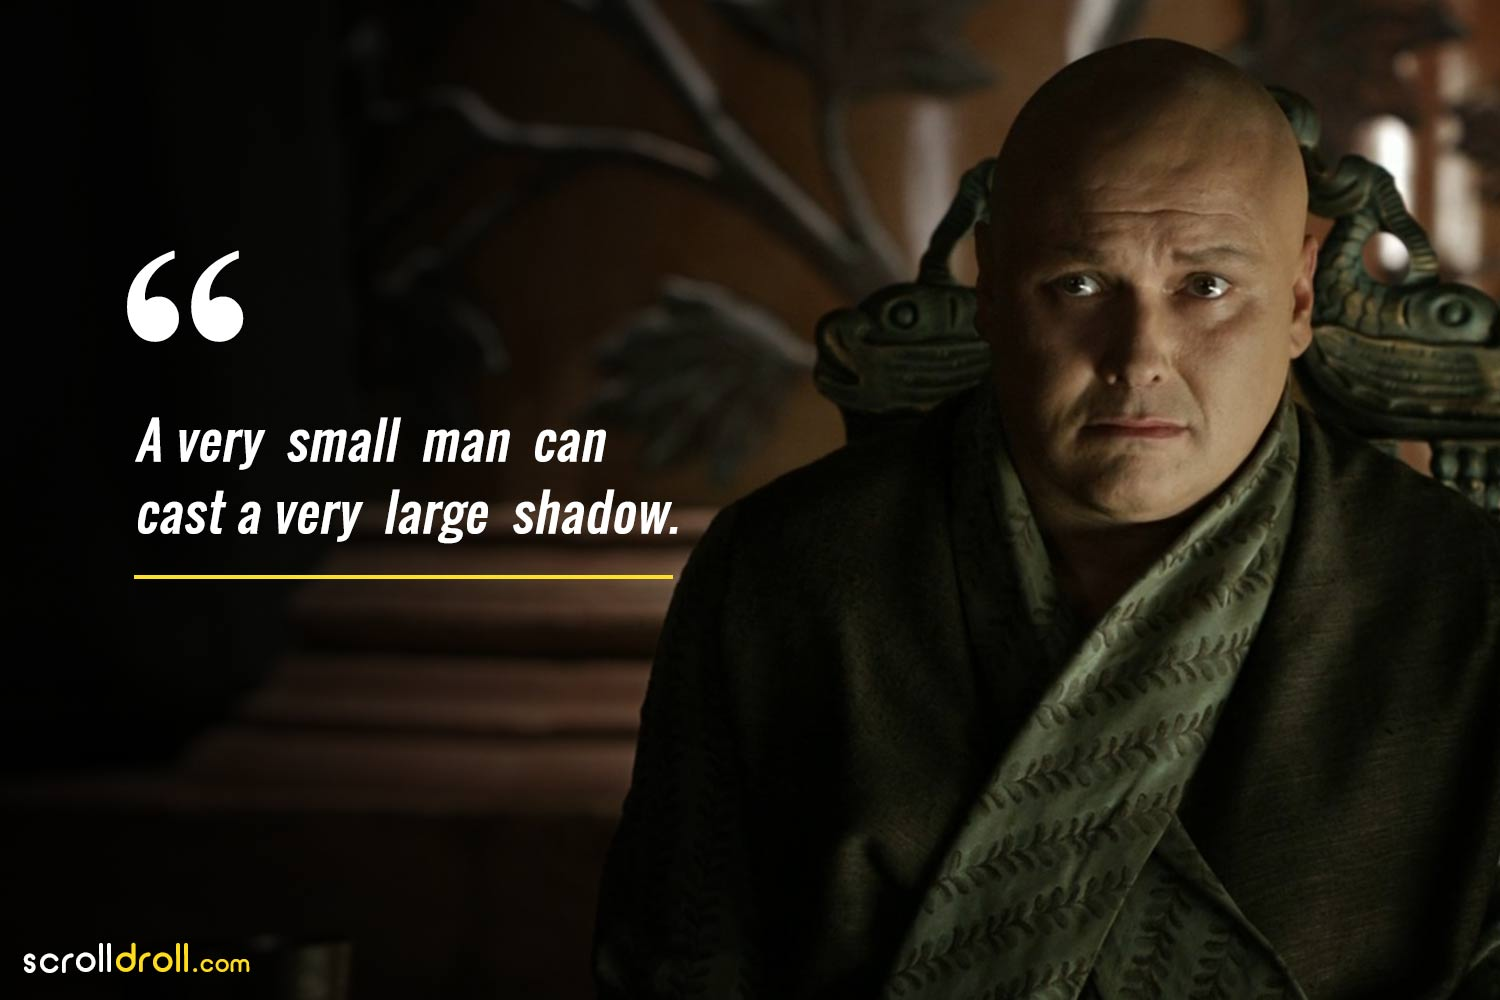 a very small man can cast a very large shadow.-lord varys quotes